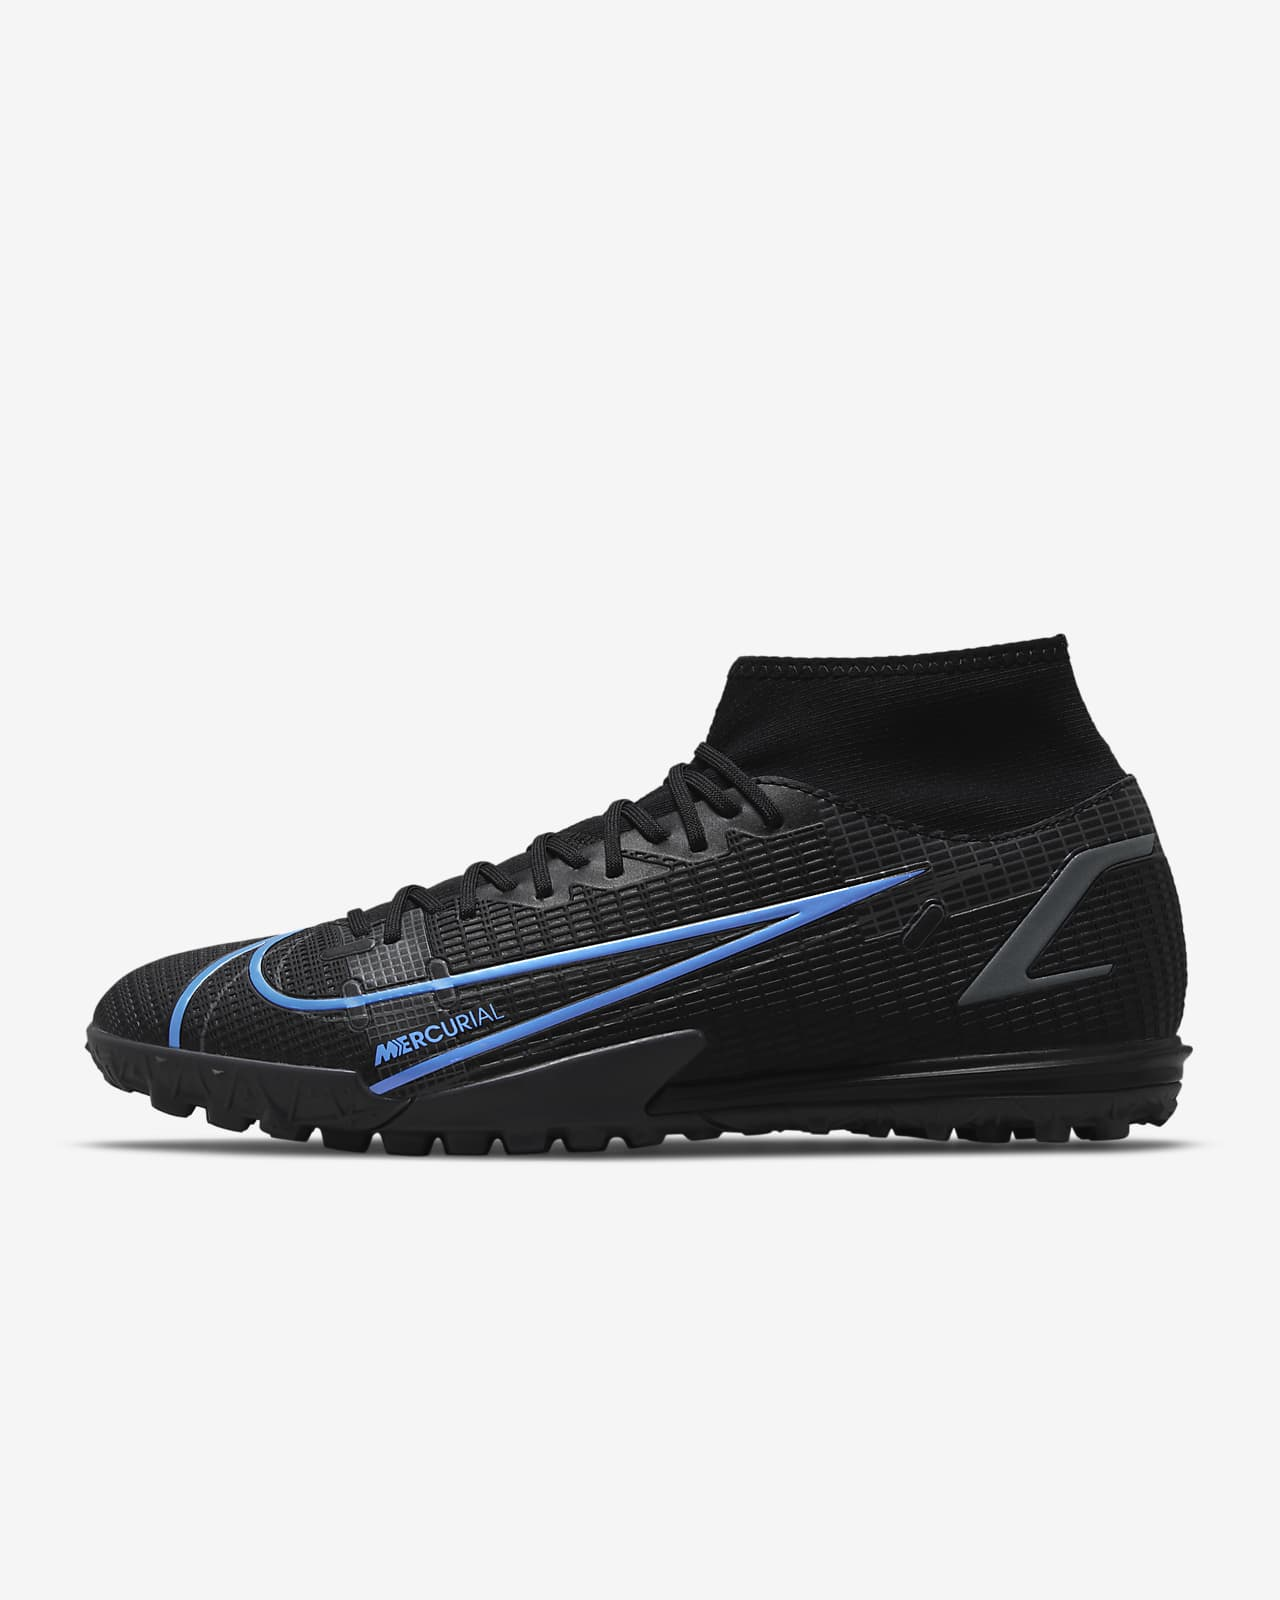 Nike Mercurial Superfly 8 Academy TF Turf Soccer Shoes